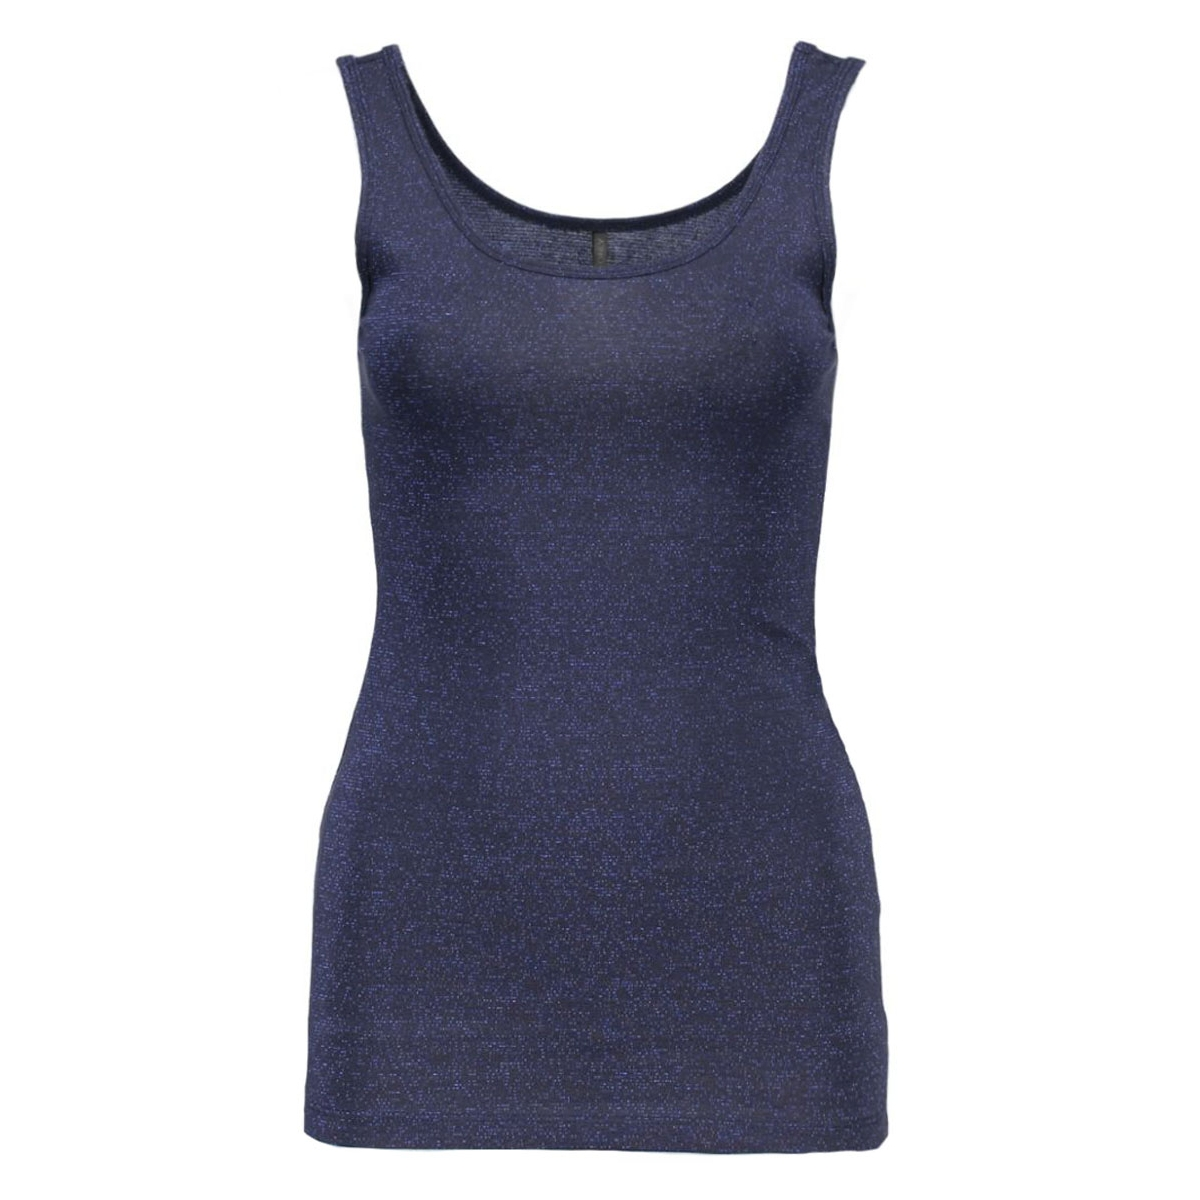 onllive love glimmer tank top noos 15101819 only top night sky/night sky